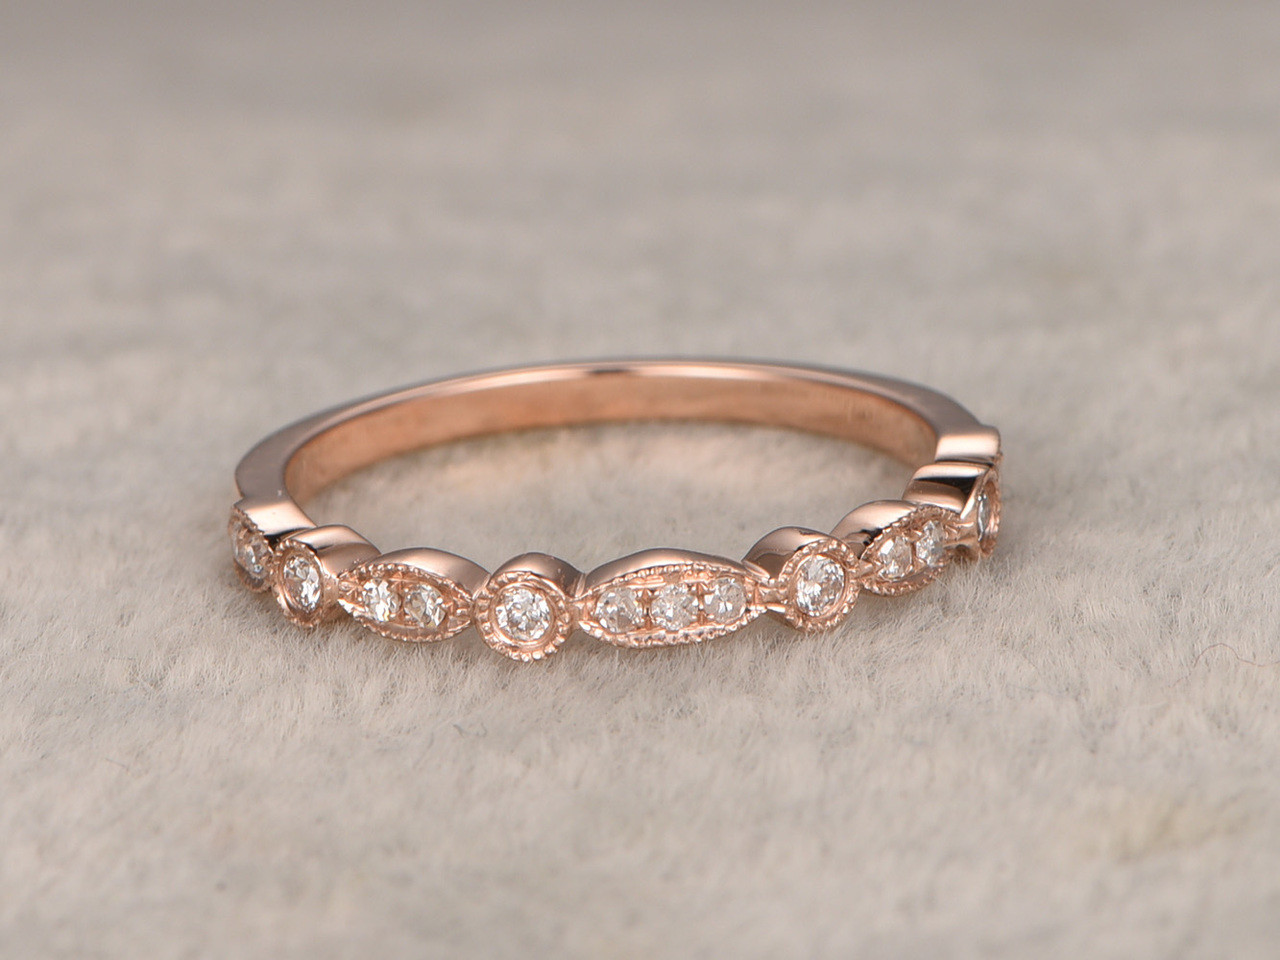 band antique wedding half ring gold eternity stones milgrain her rings for deco diamond center art rose